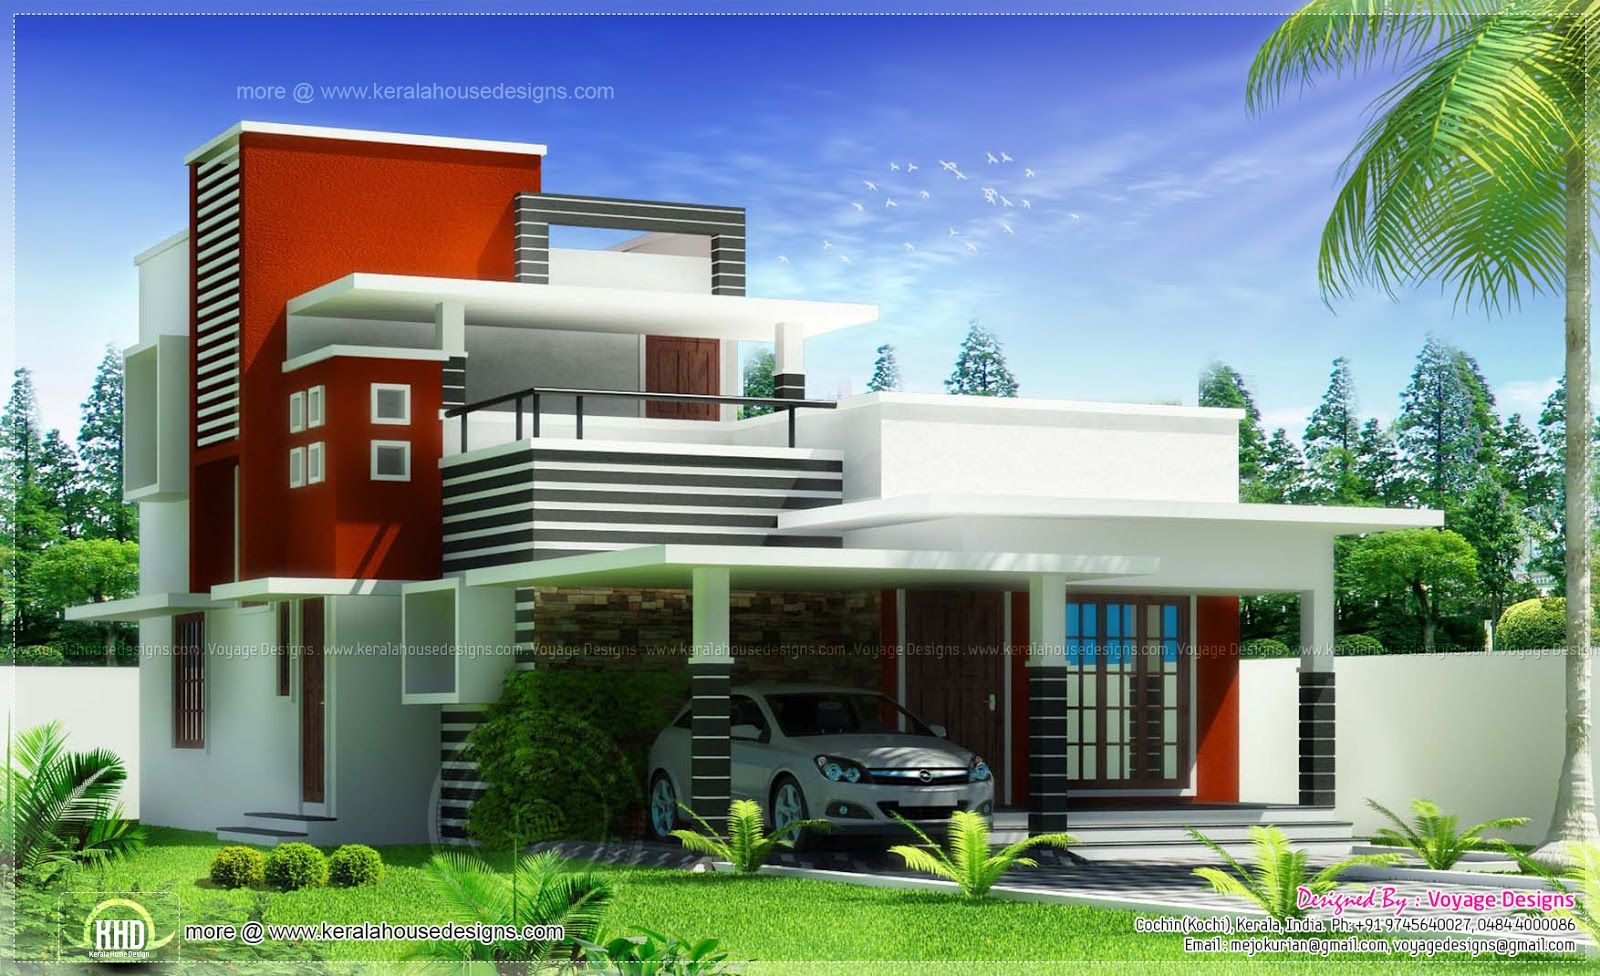 Kerala house designs architecture pinterest kerala for Modern indian house plans